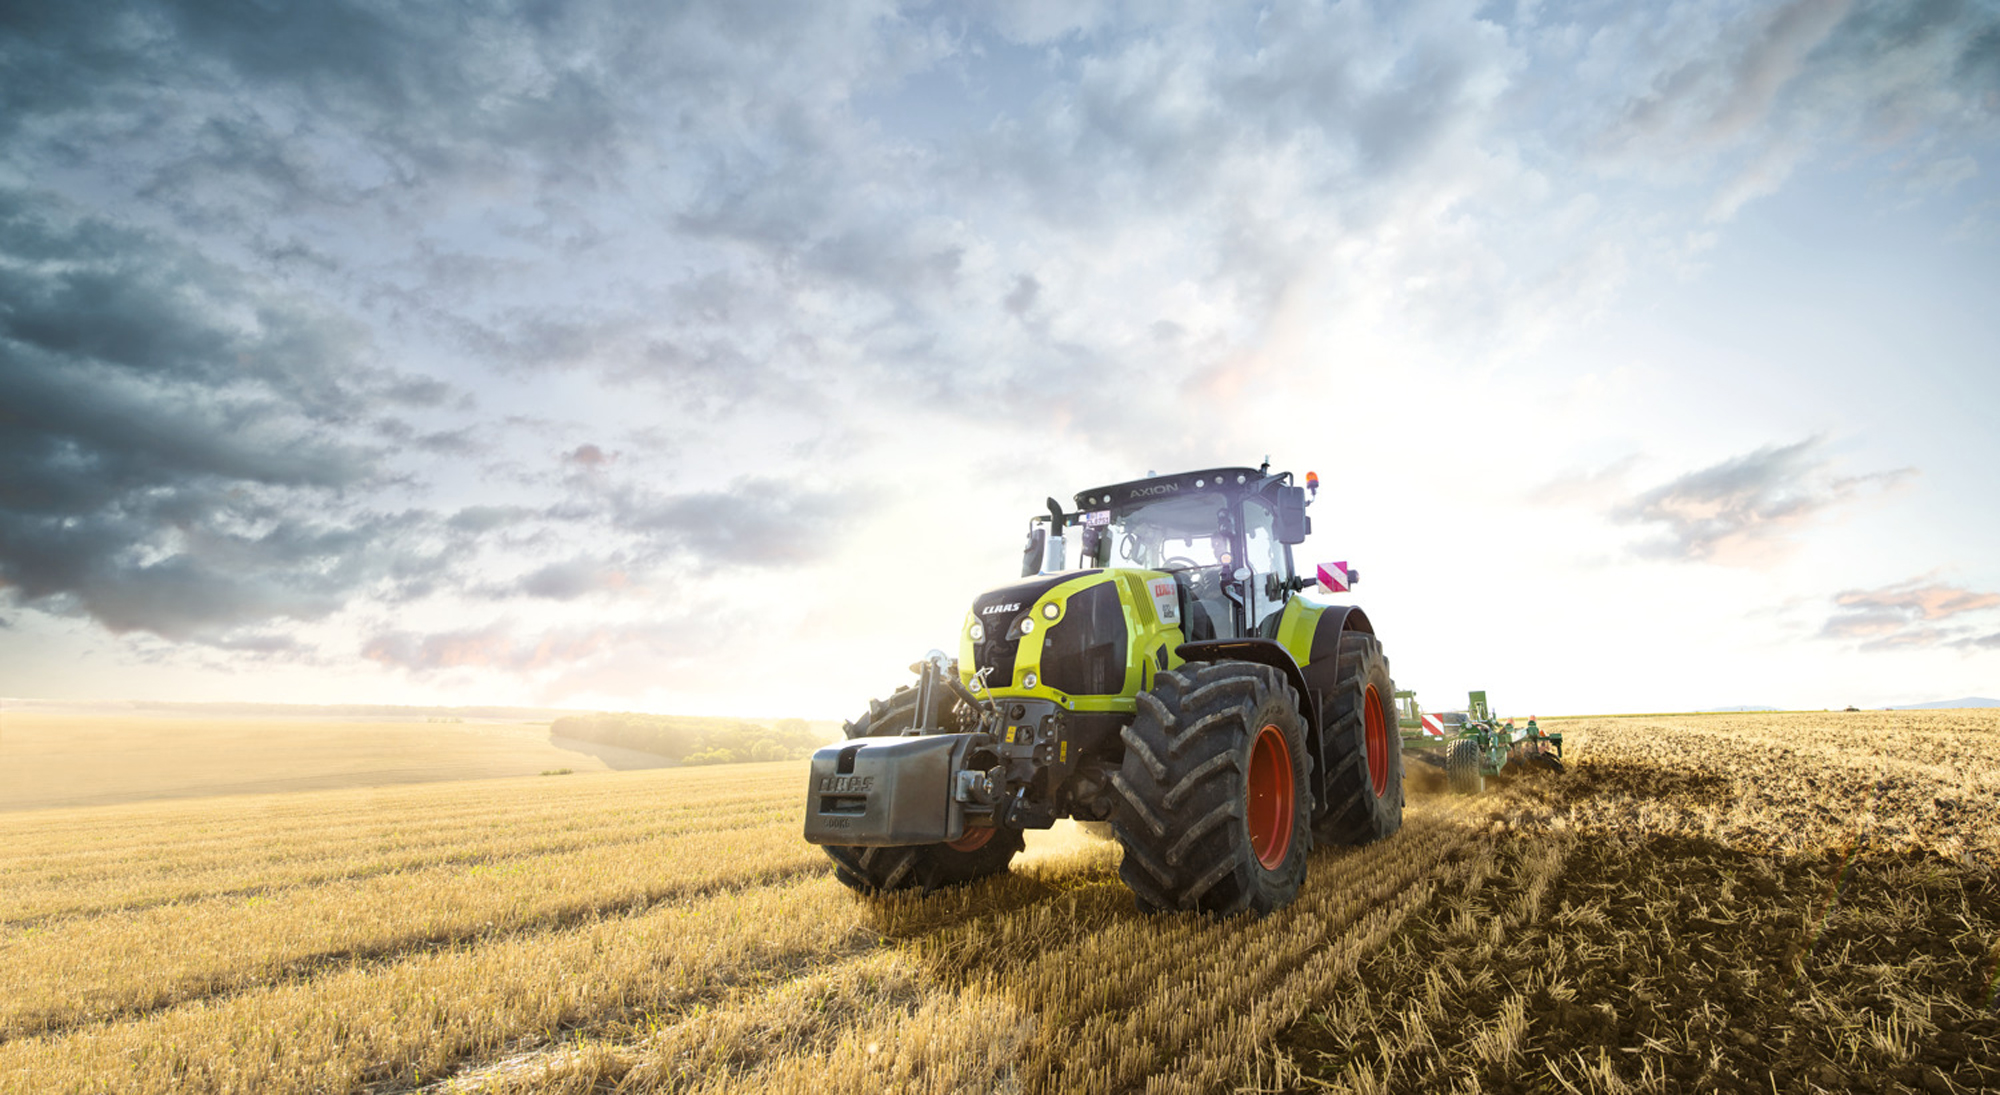 Claas_Schlepper|copyright: Claas